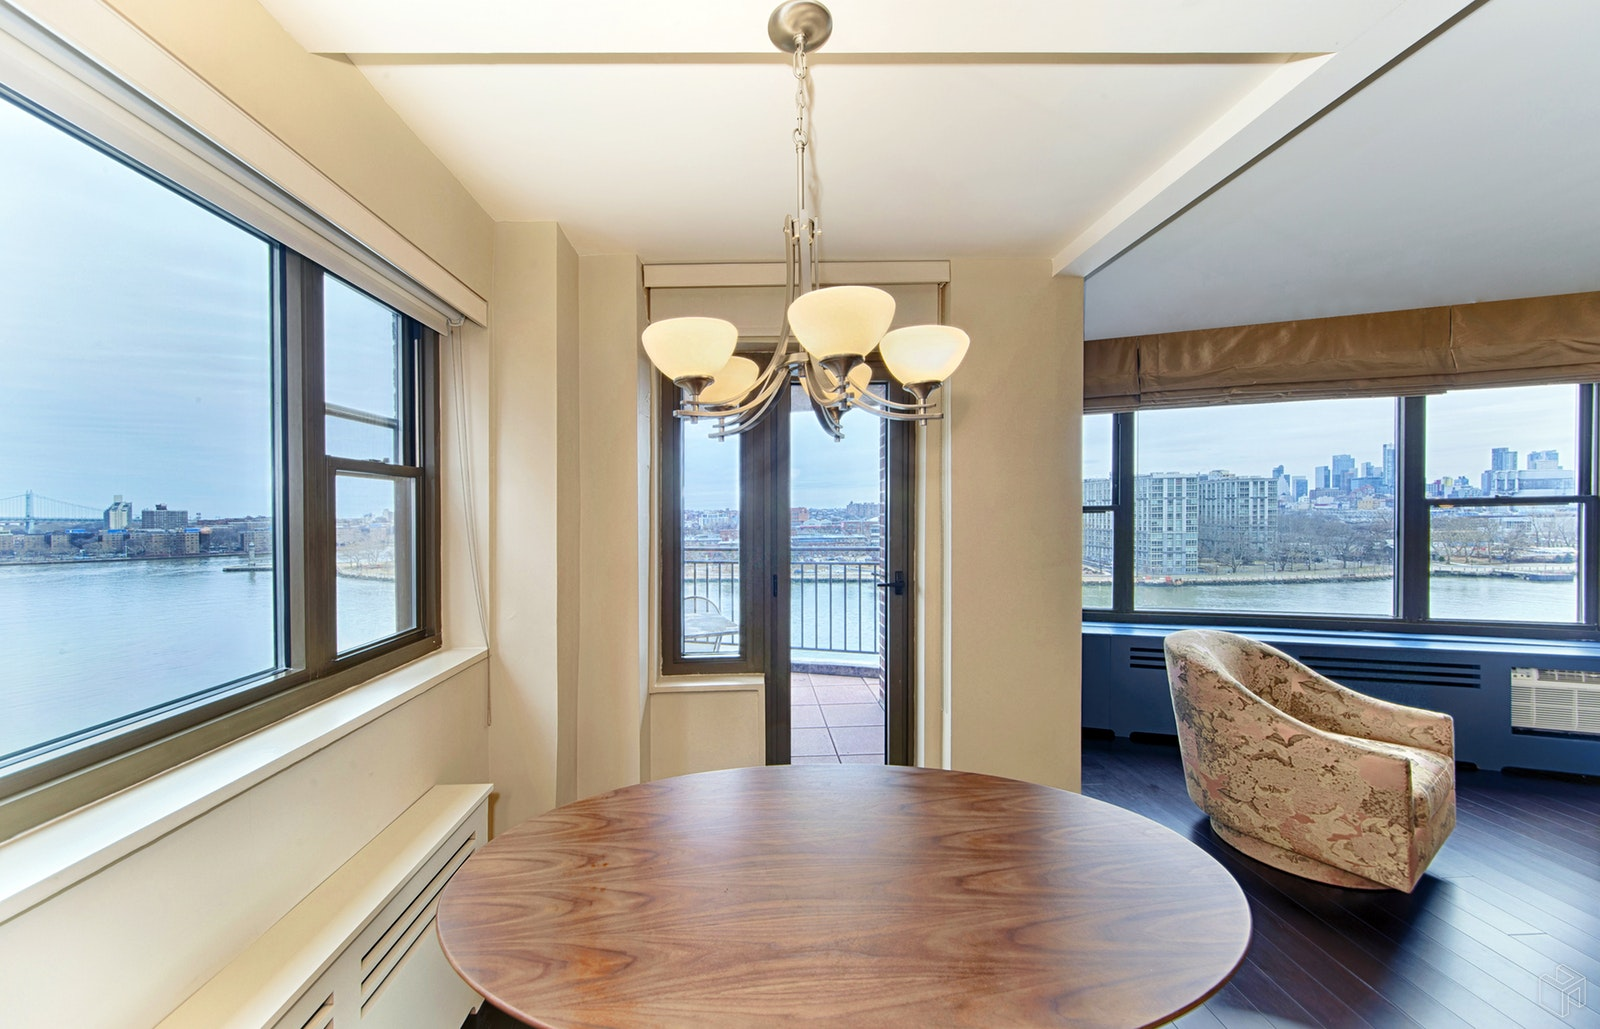 55 EAST END AVENUE 8D, Upper East Side, $1,625,000, Web #: 19424382